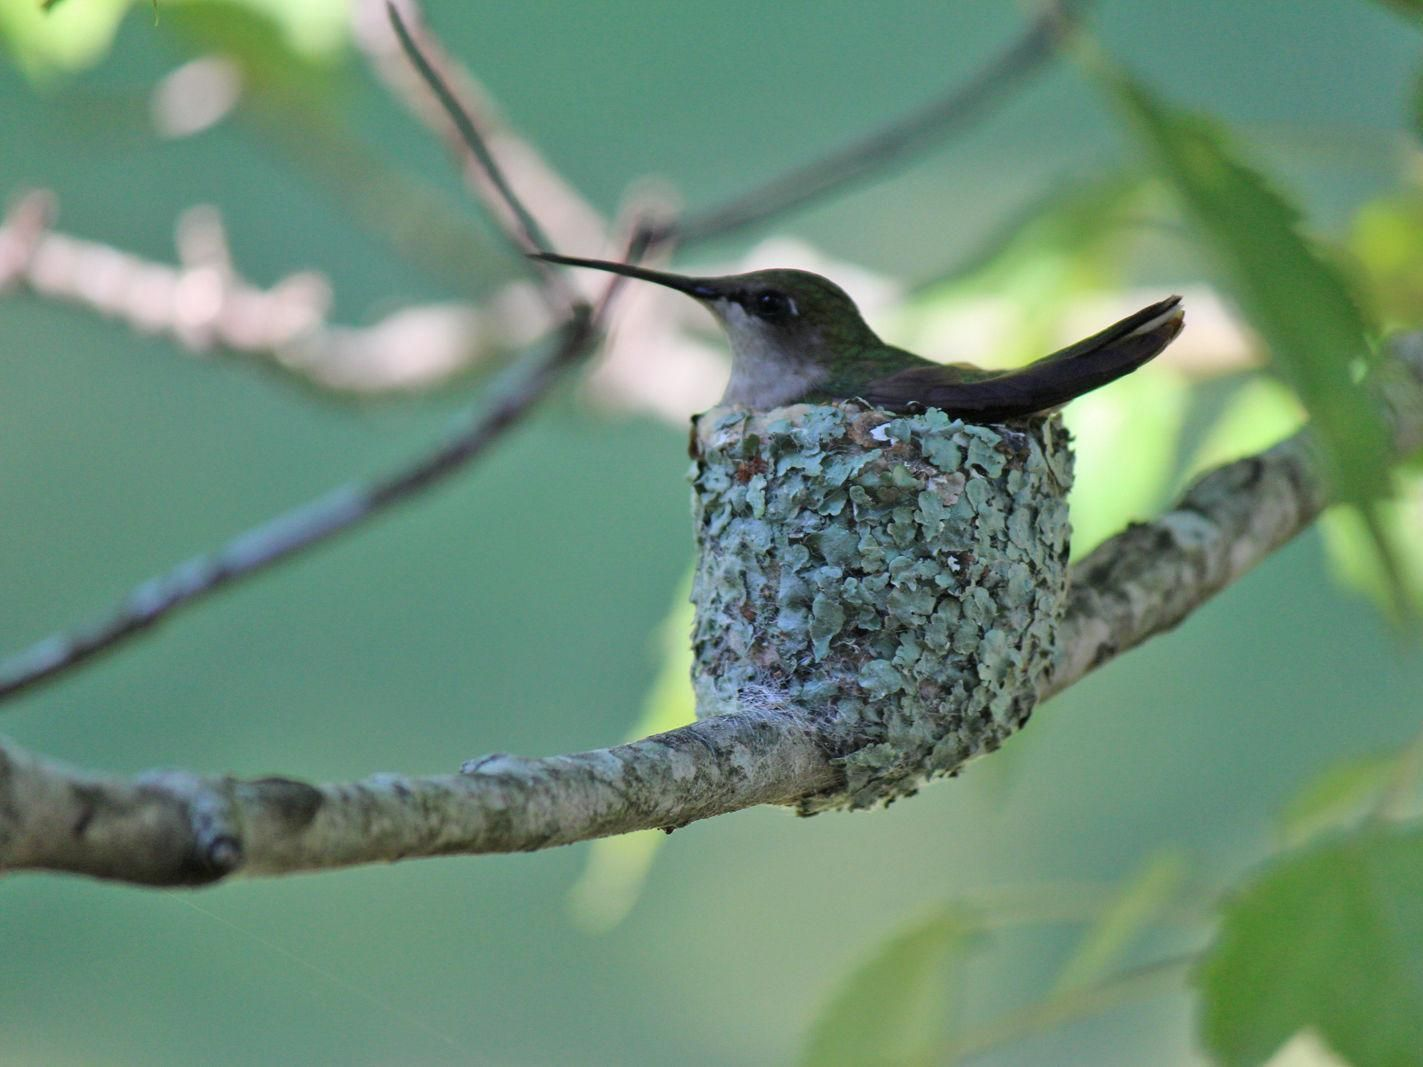 780ab3e0b8c249f3bb9f480b79f0bcf5 - How To Get A Hummingbird To Land On Your Finger